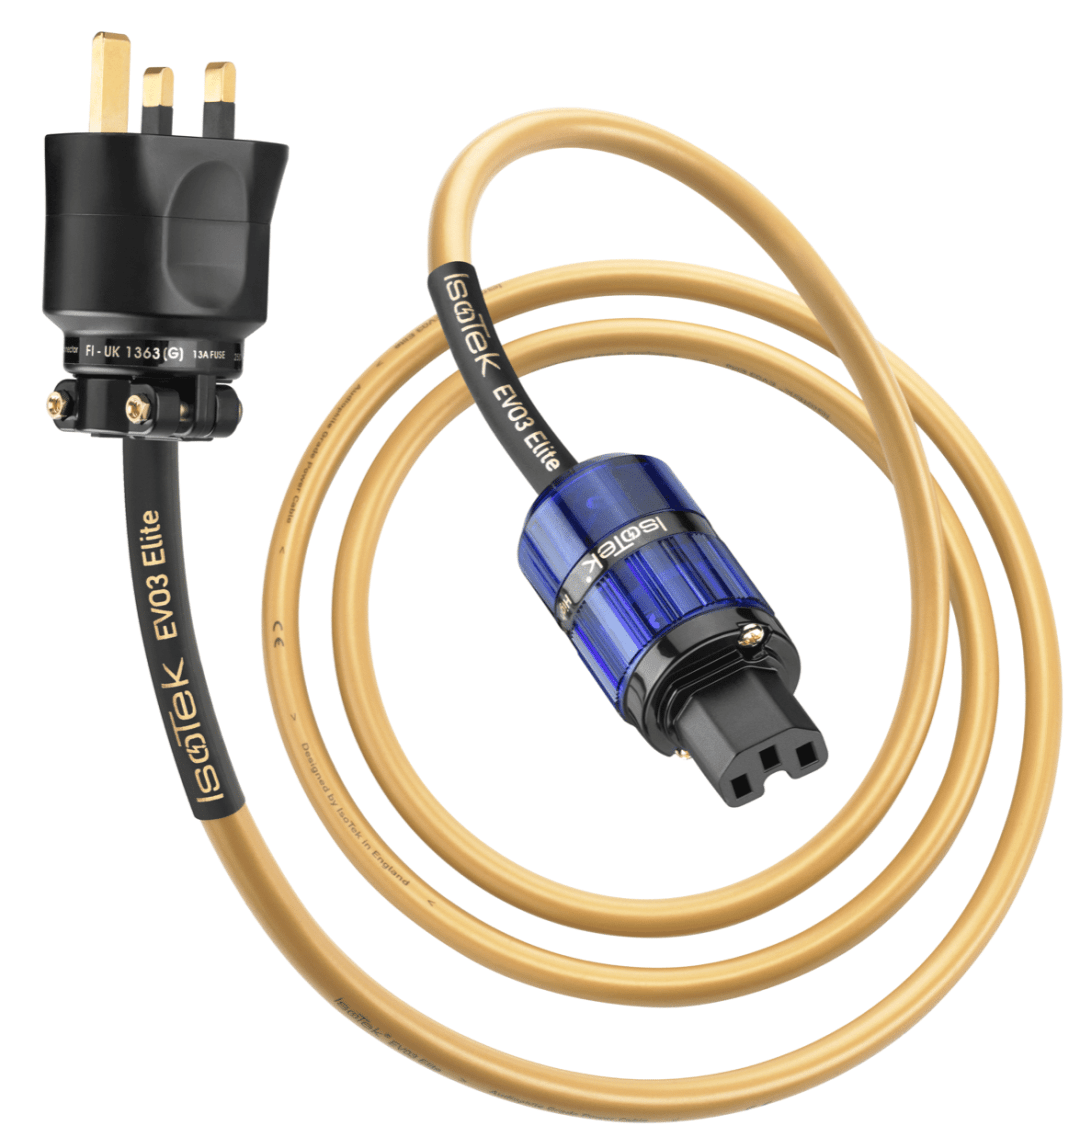 EVO3 ELITE power cable From Isotek